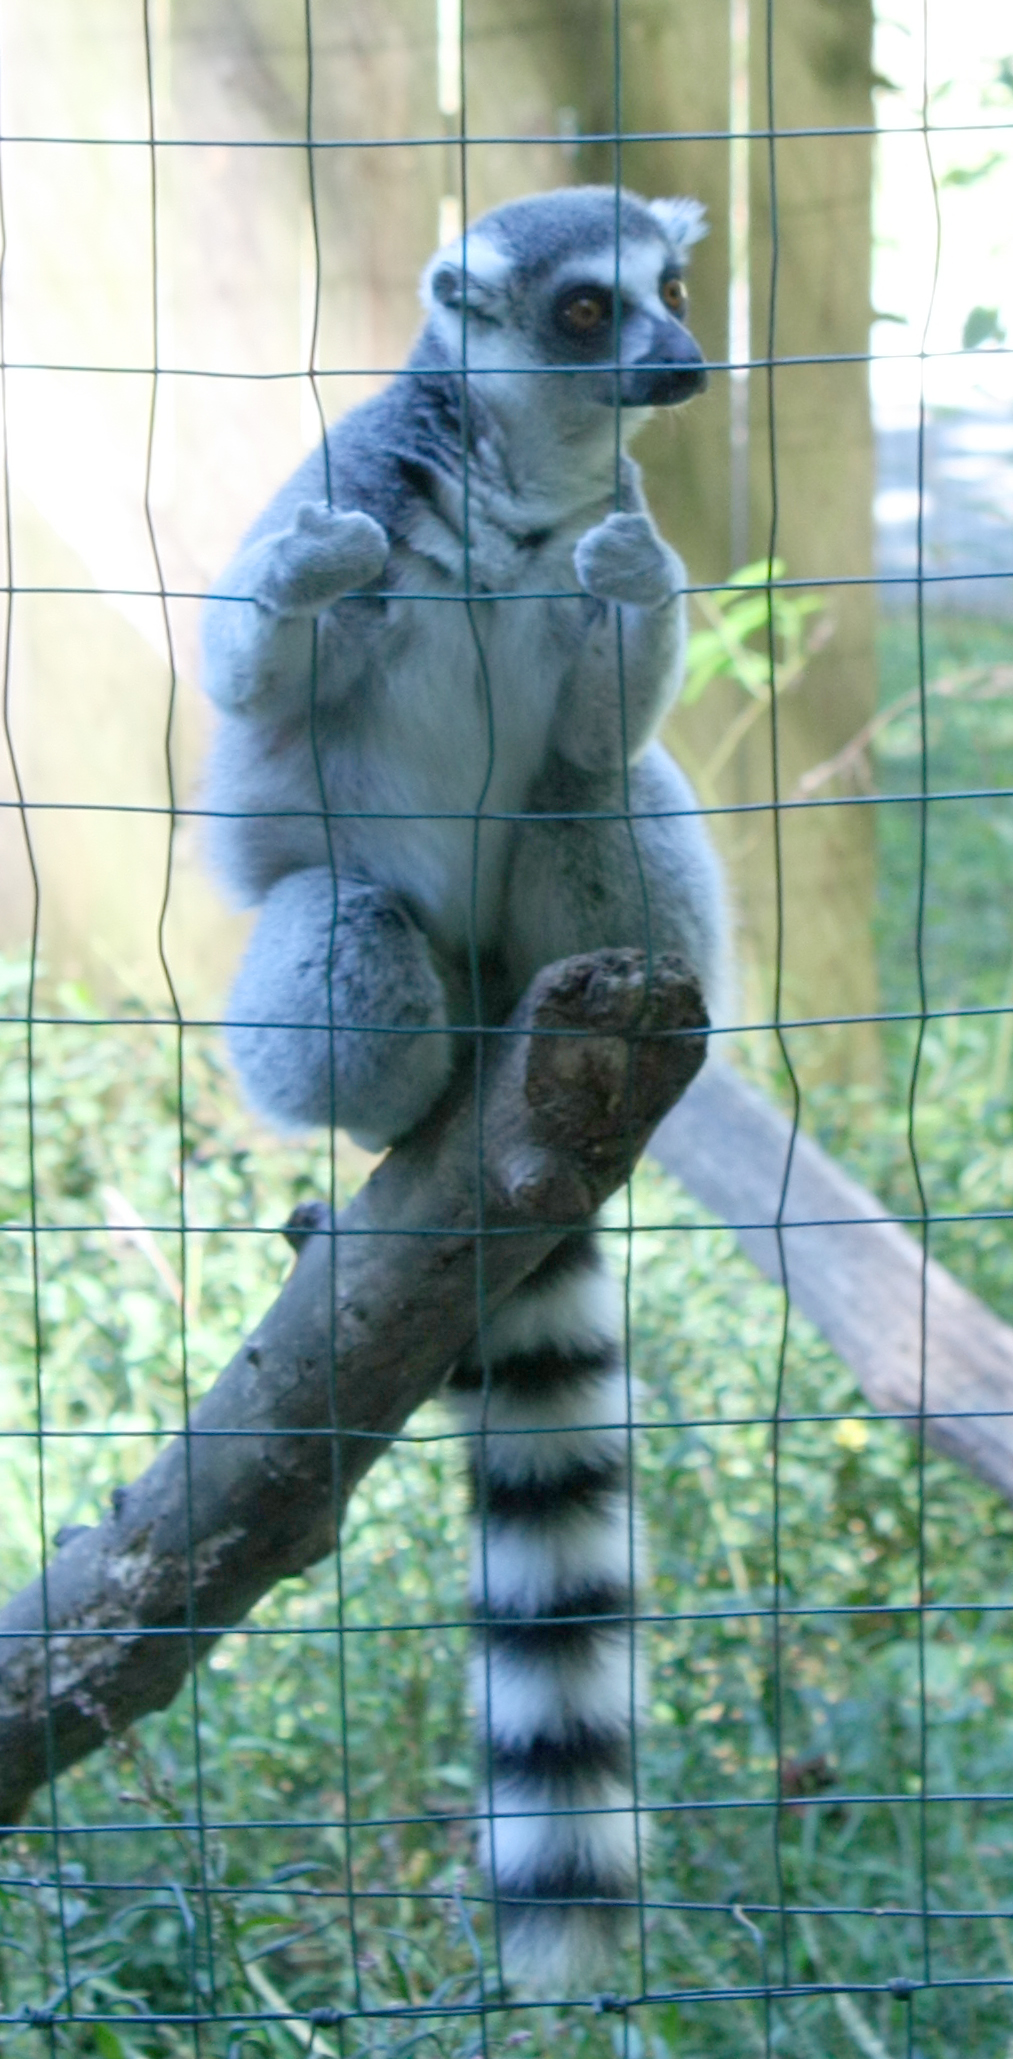 Creation Kingdom Zoo ring tailed lemur